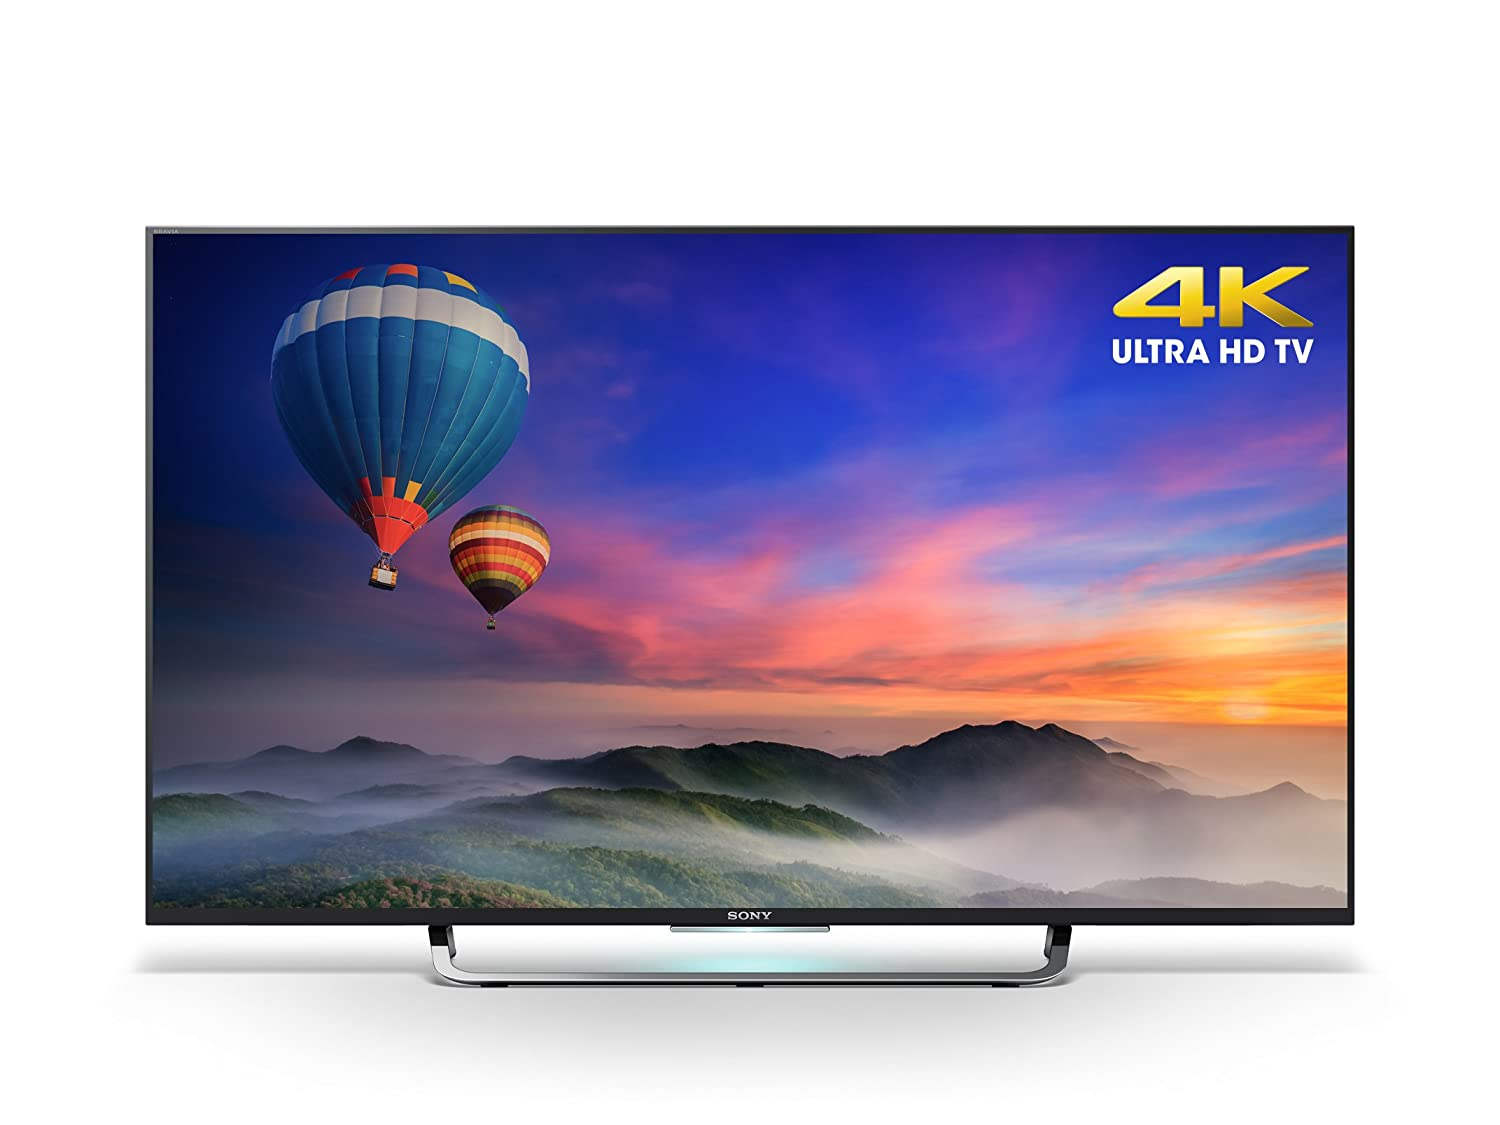 Sony XBR49X830C 49-Inch 4K Ultra HD Smart LED TV Review